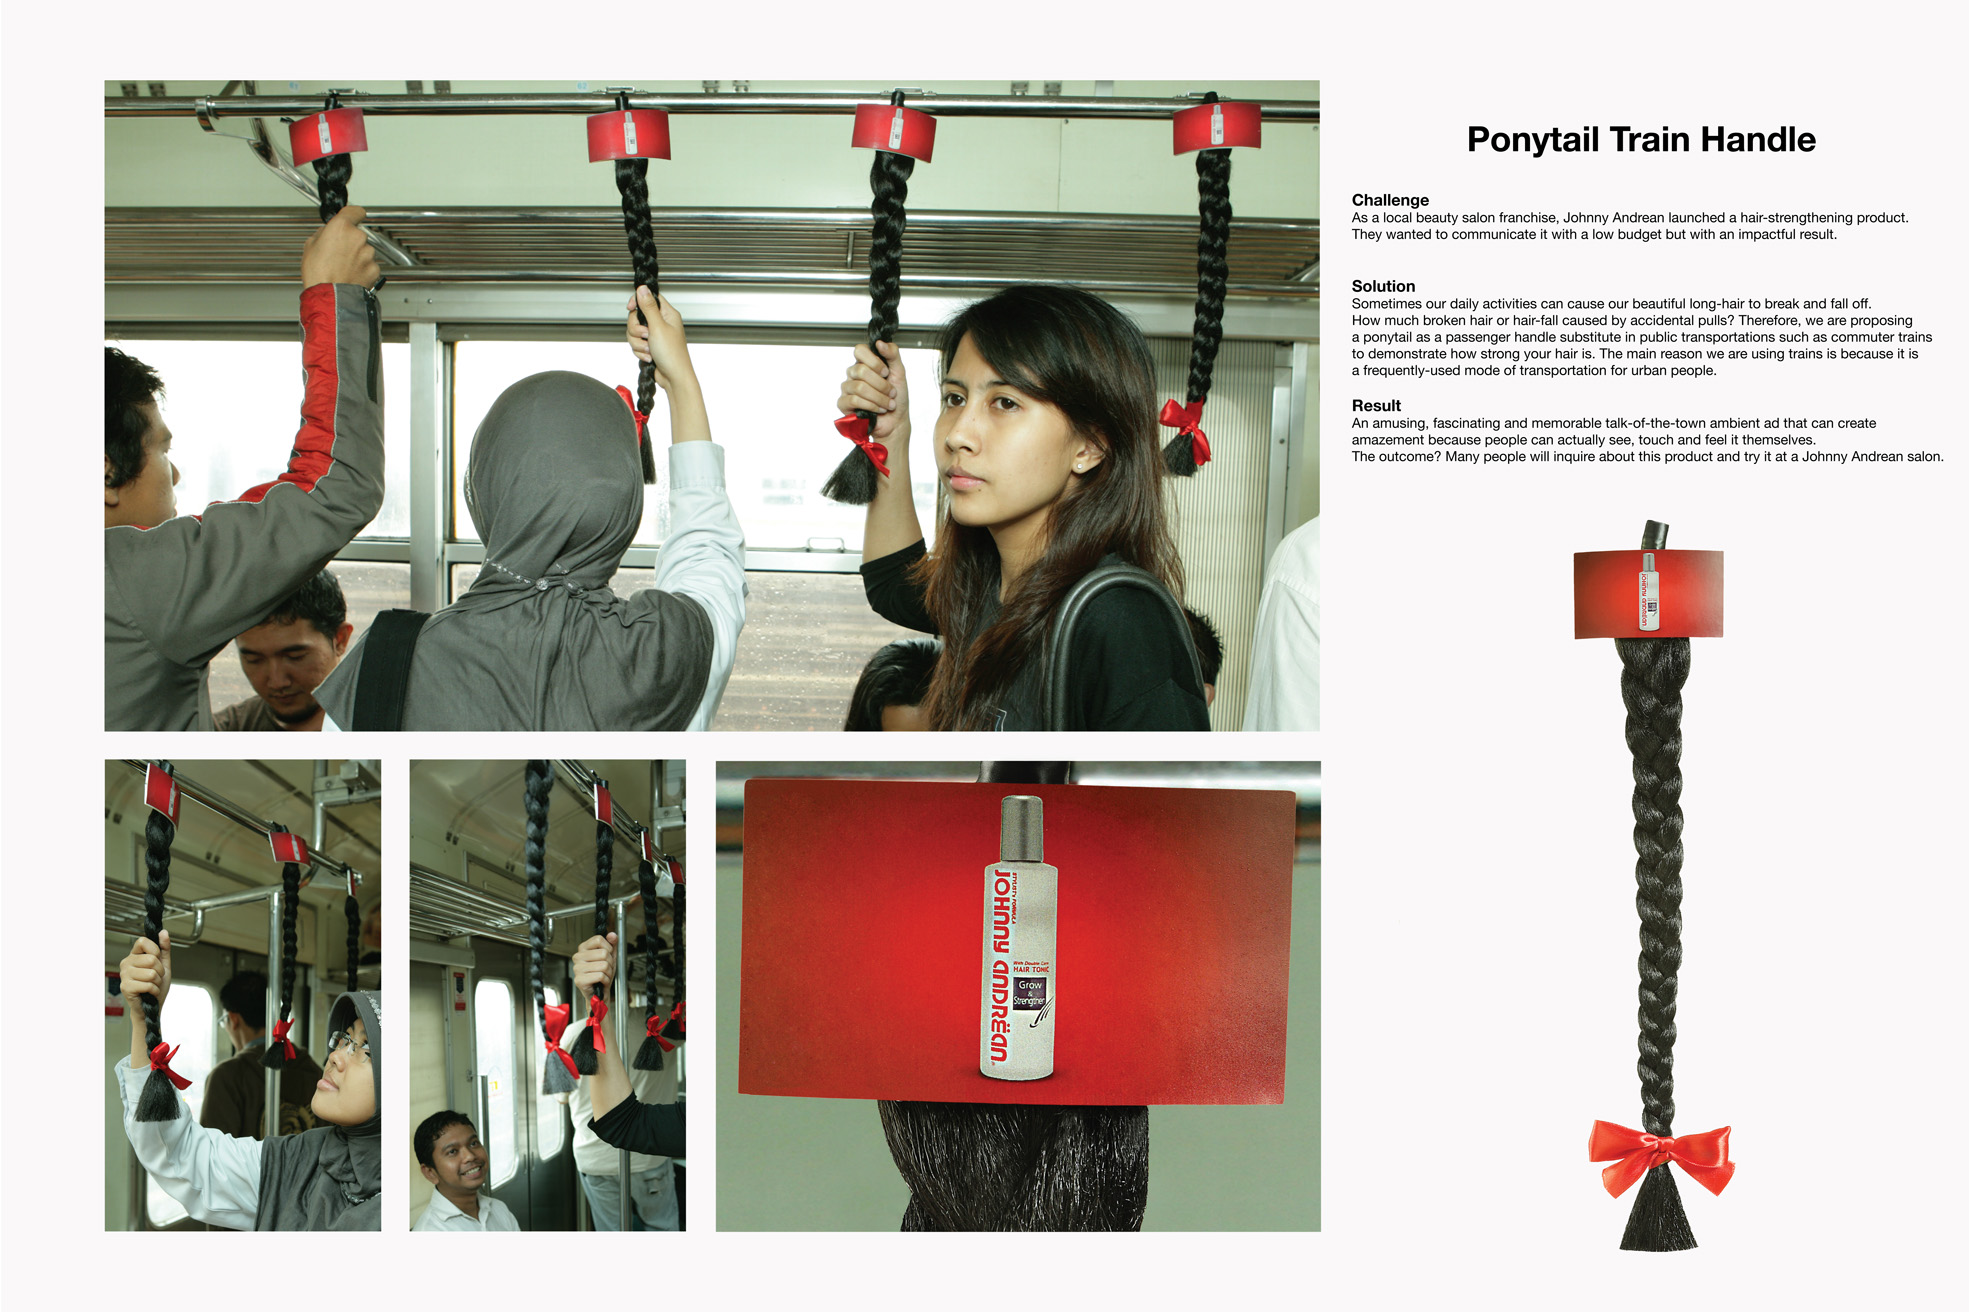 Guerilla Marketing Ponytrail Train Handle